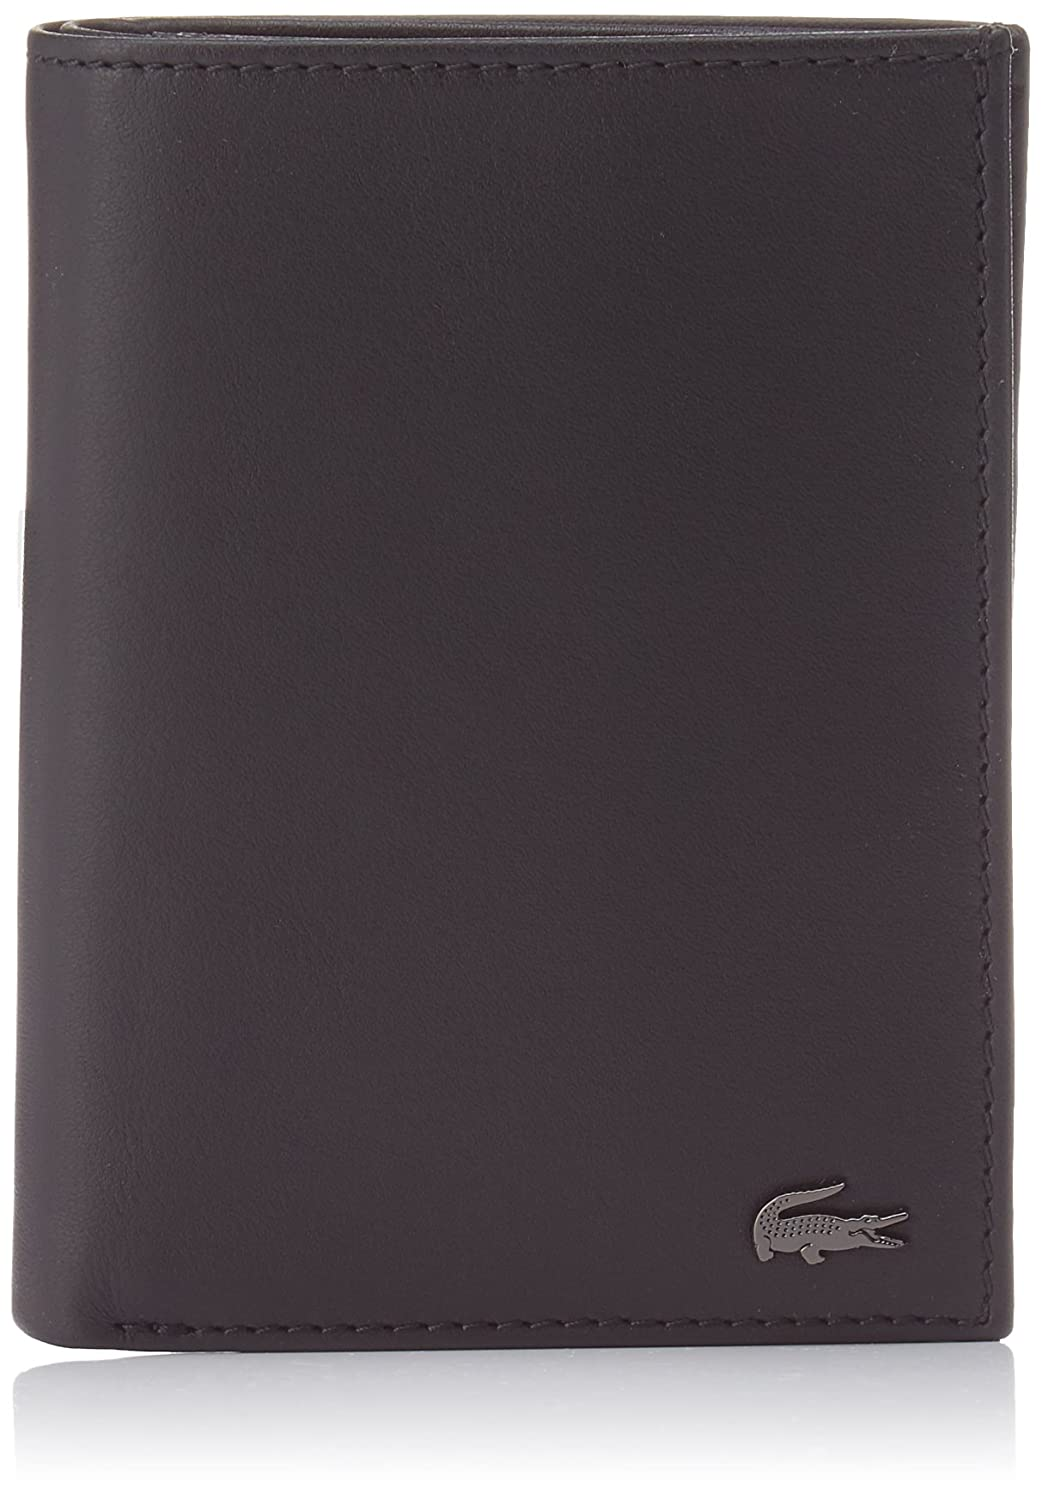 Lacoste Portefeuille vertical (nh2321il) taille 12, 5 cm